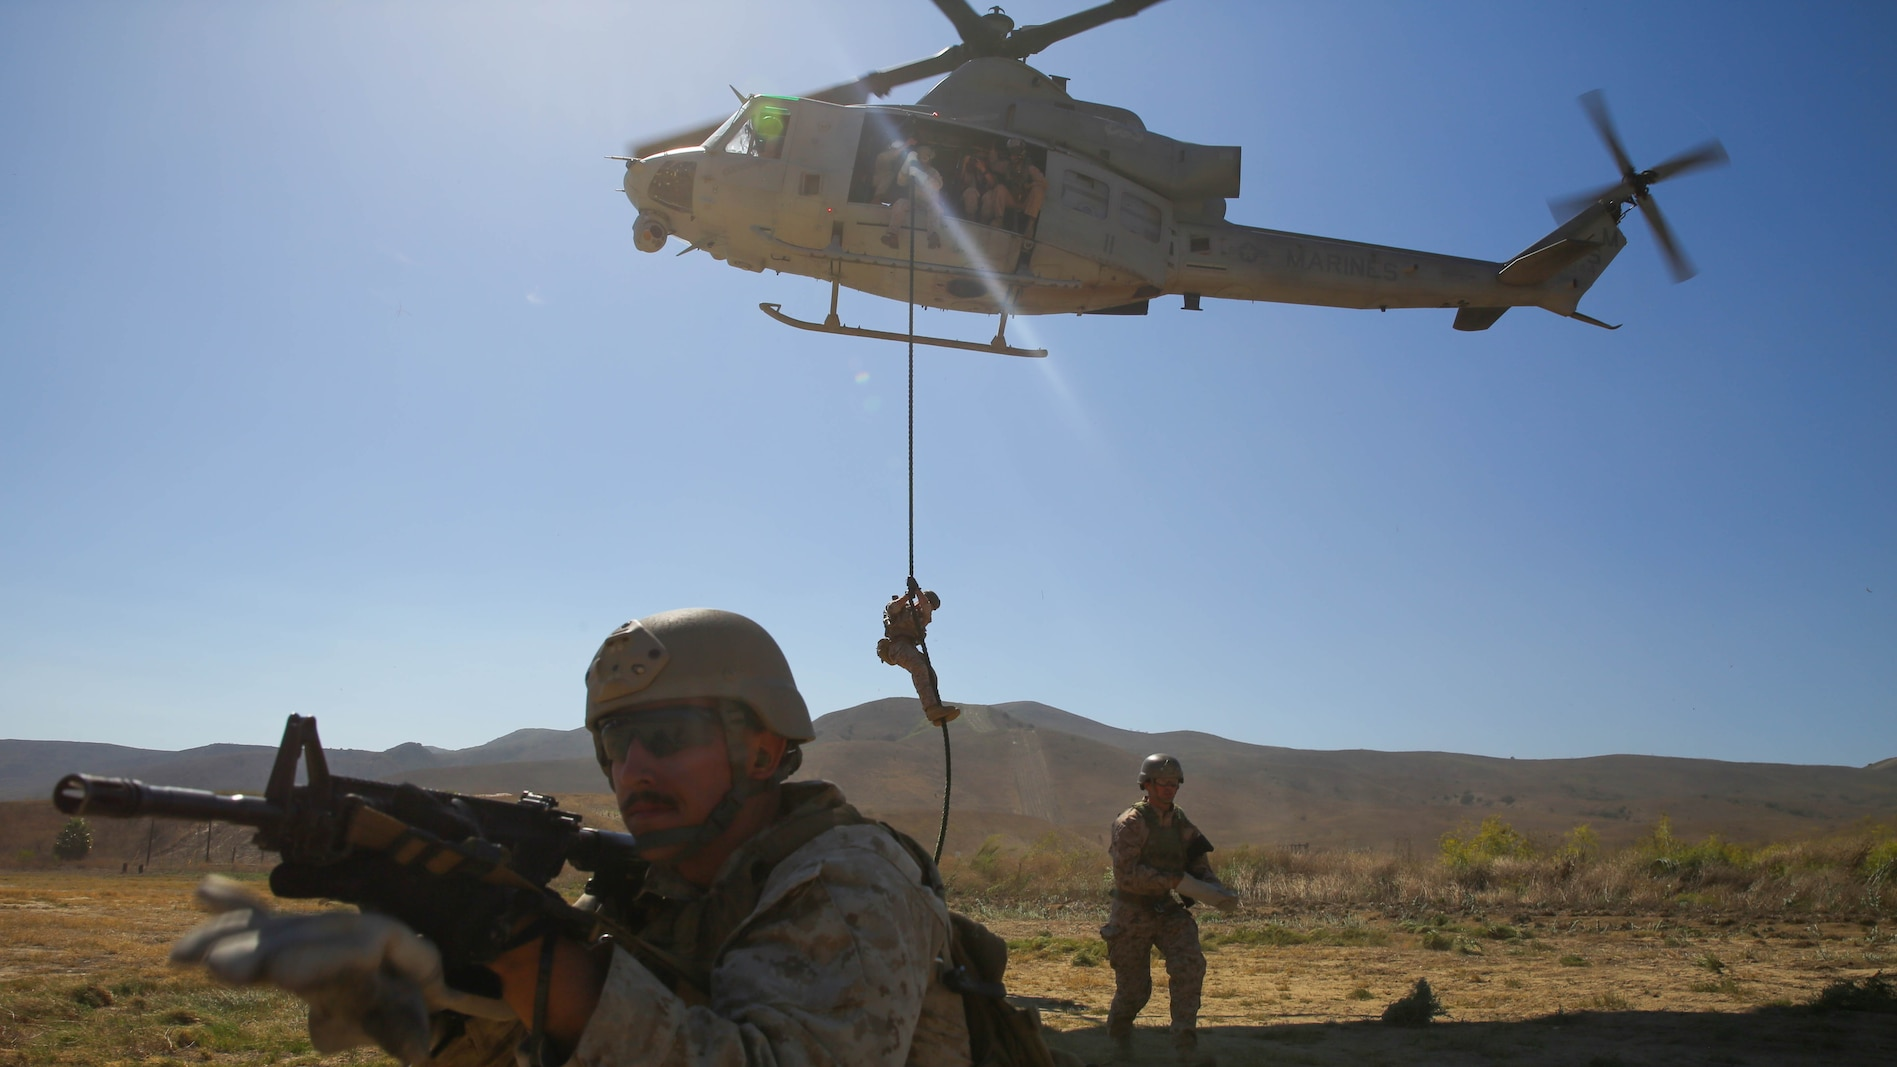 A Marine with Company A, 1st Reconnaissance Battalion, 1st Marine Division, I Marine Expeditionary Force, provides security for his fellow Marines at the drop zone of a fast-roping exercise on Marine Corps Base Camp Pendleton, Calif., Aug 18, 2015. Utilizing both fast-roping and Special Patrol Insertion and Extraction rigging methods, the purpose of the training exercise was to integrate operational coordination between the I MEF Ground Combat Element and Air Combat Element.